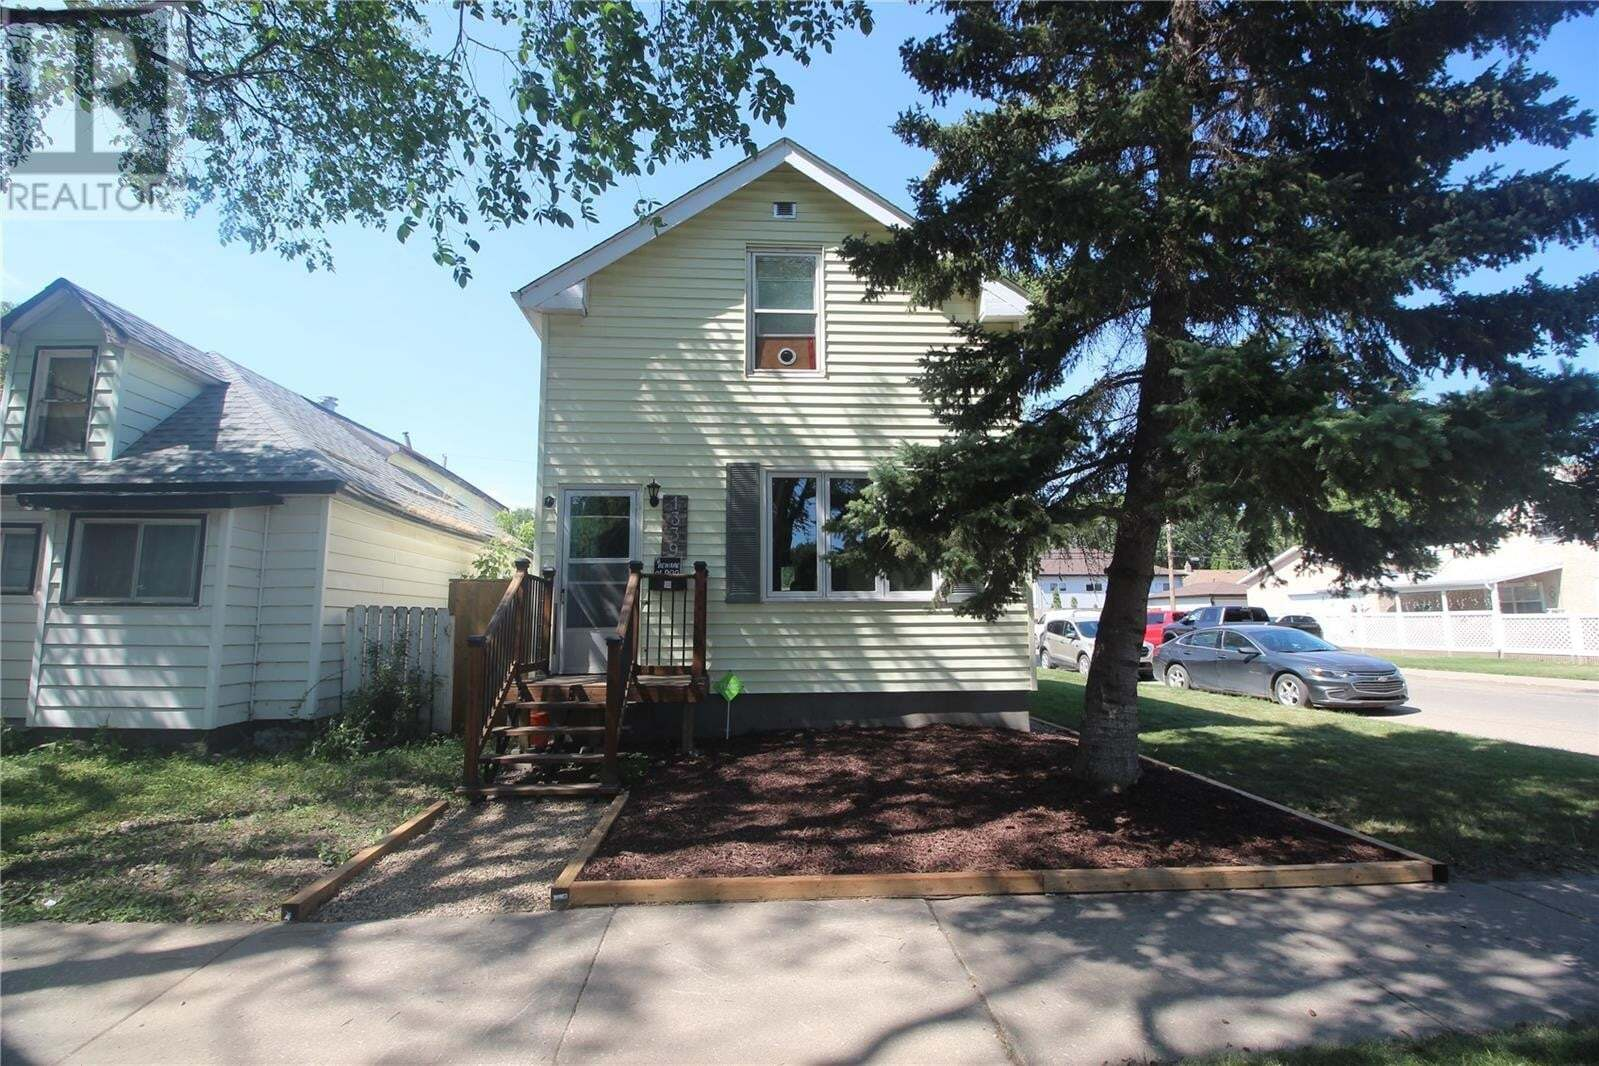 House for sale at 1339 B Ave N Saskatoon Saskatchewan - MLS: SK819467